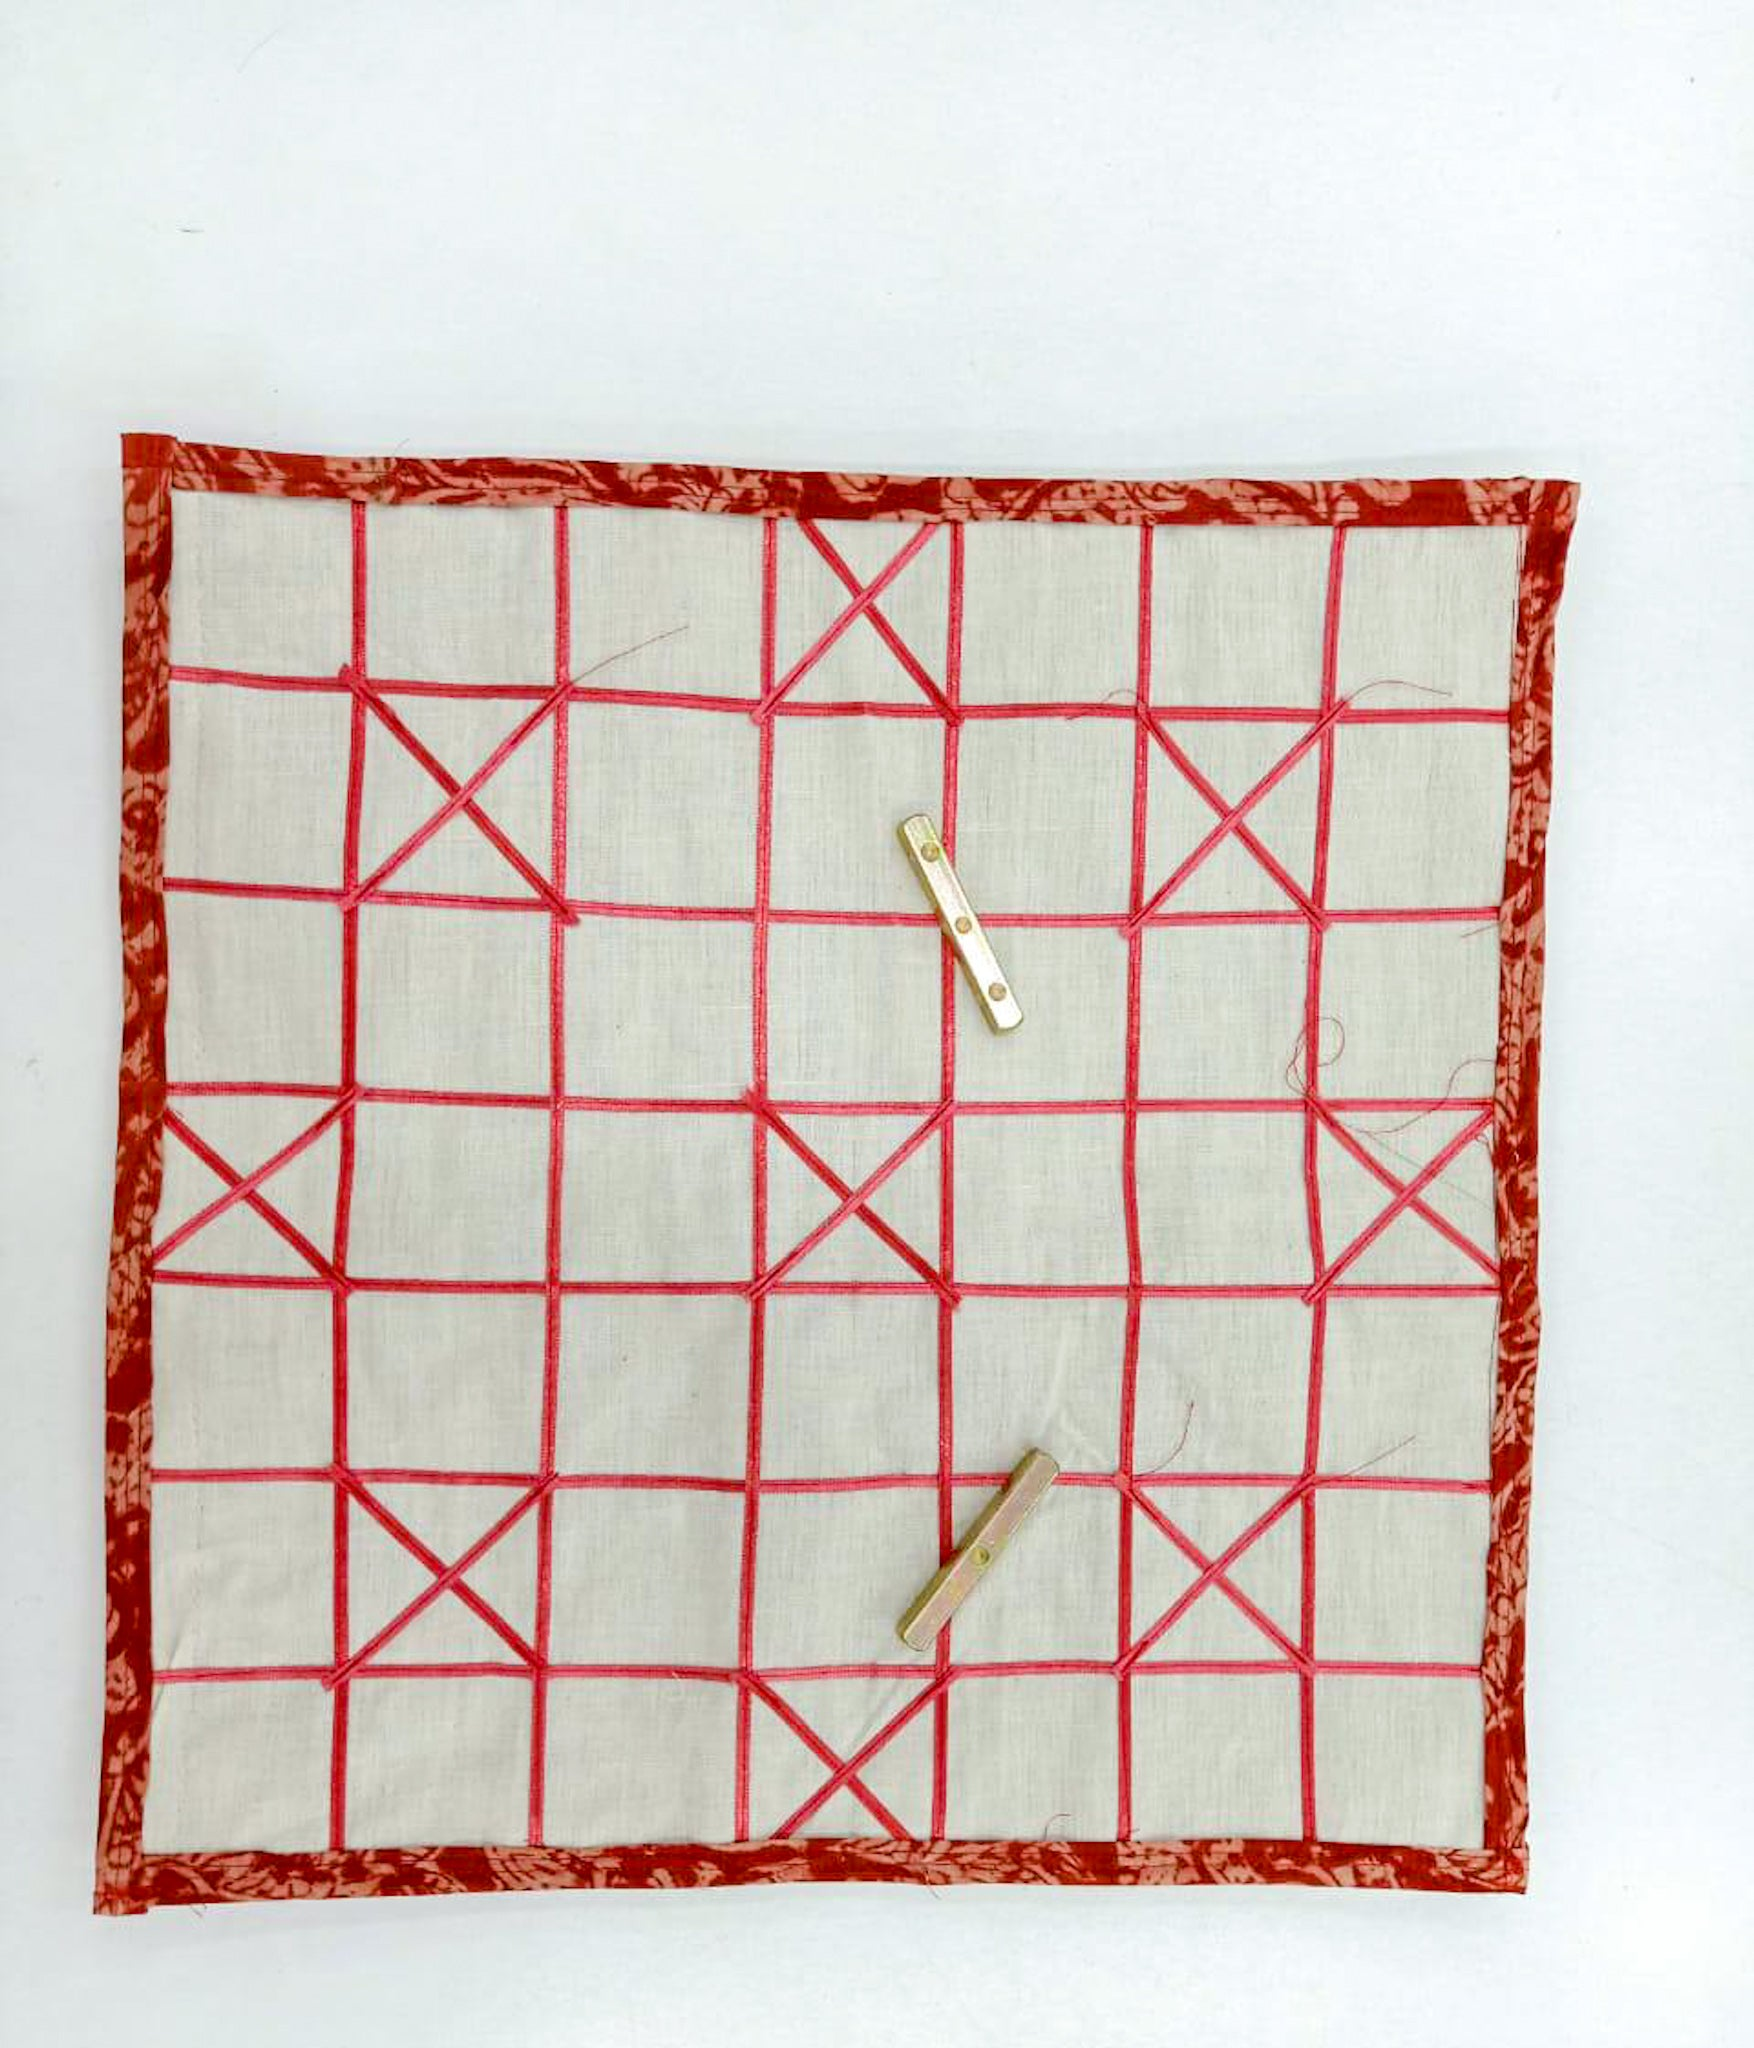 Dhayam / Chausar / Pachisi Cloth Game Board With Brass Thayakkattai and Wooden Coins